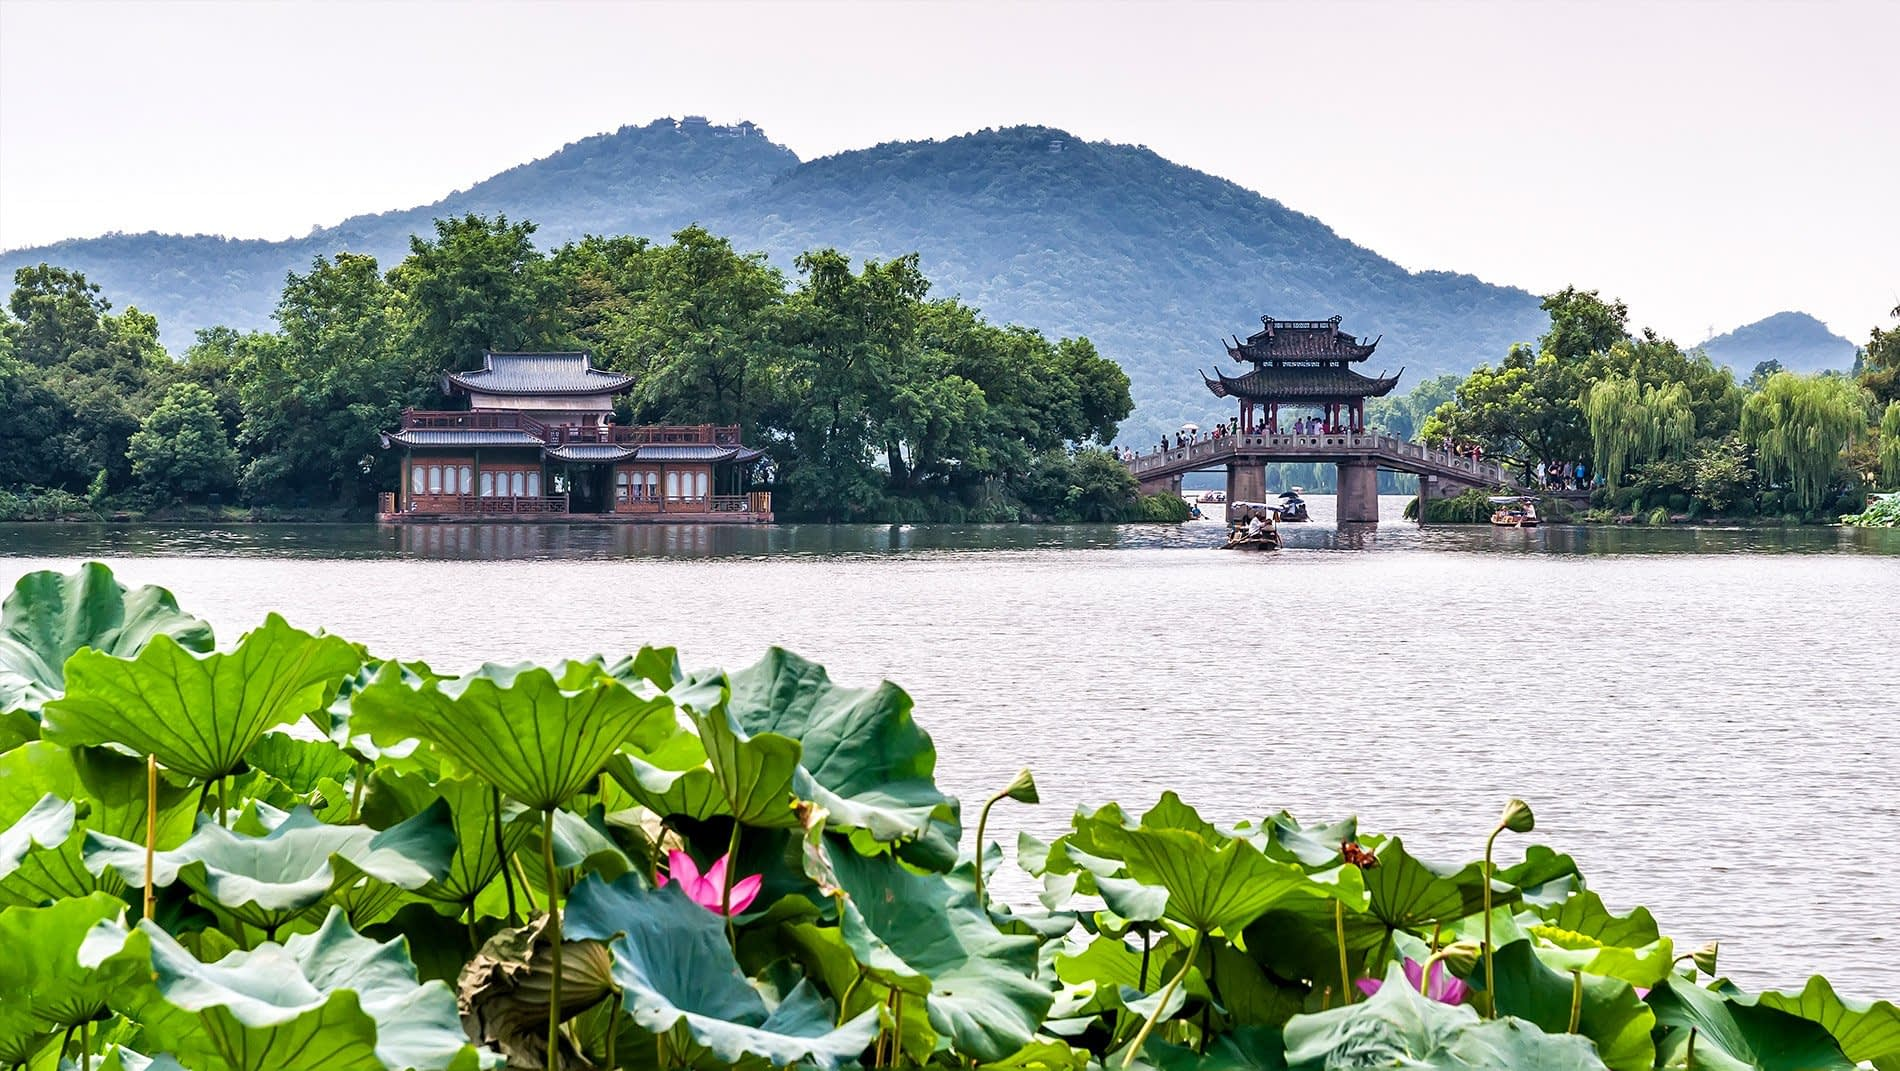 West Lake~West Lake has defined scenic elegance in East Asia for many centuries. Visitors will see its lakeside willow trees, ornamental bridges and causeways as a quintessentially Chinese idiom.